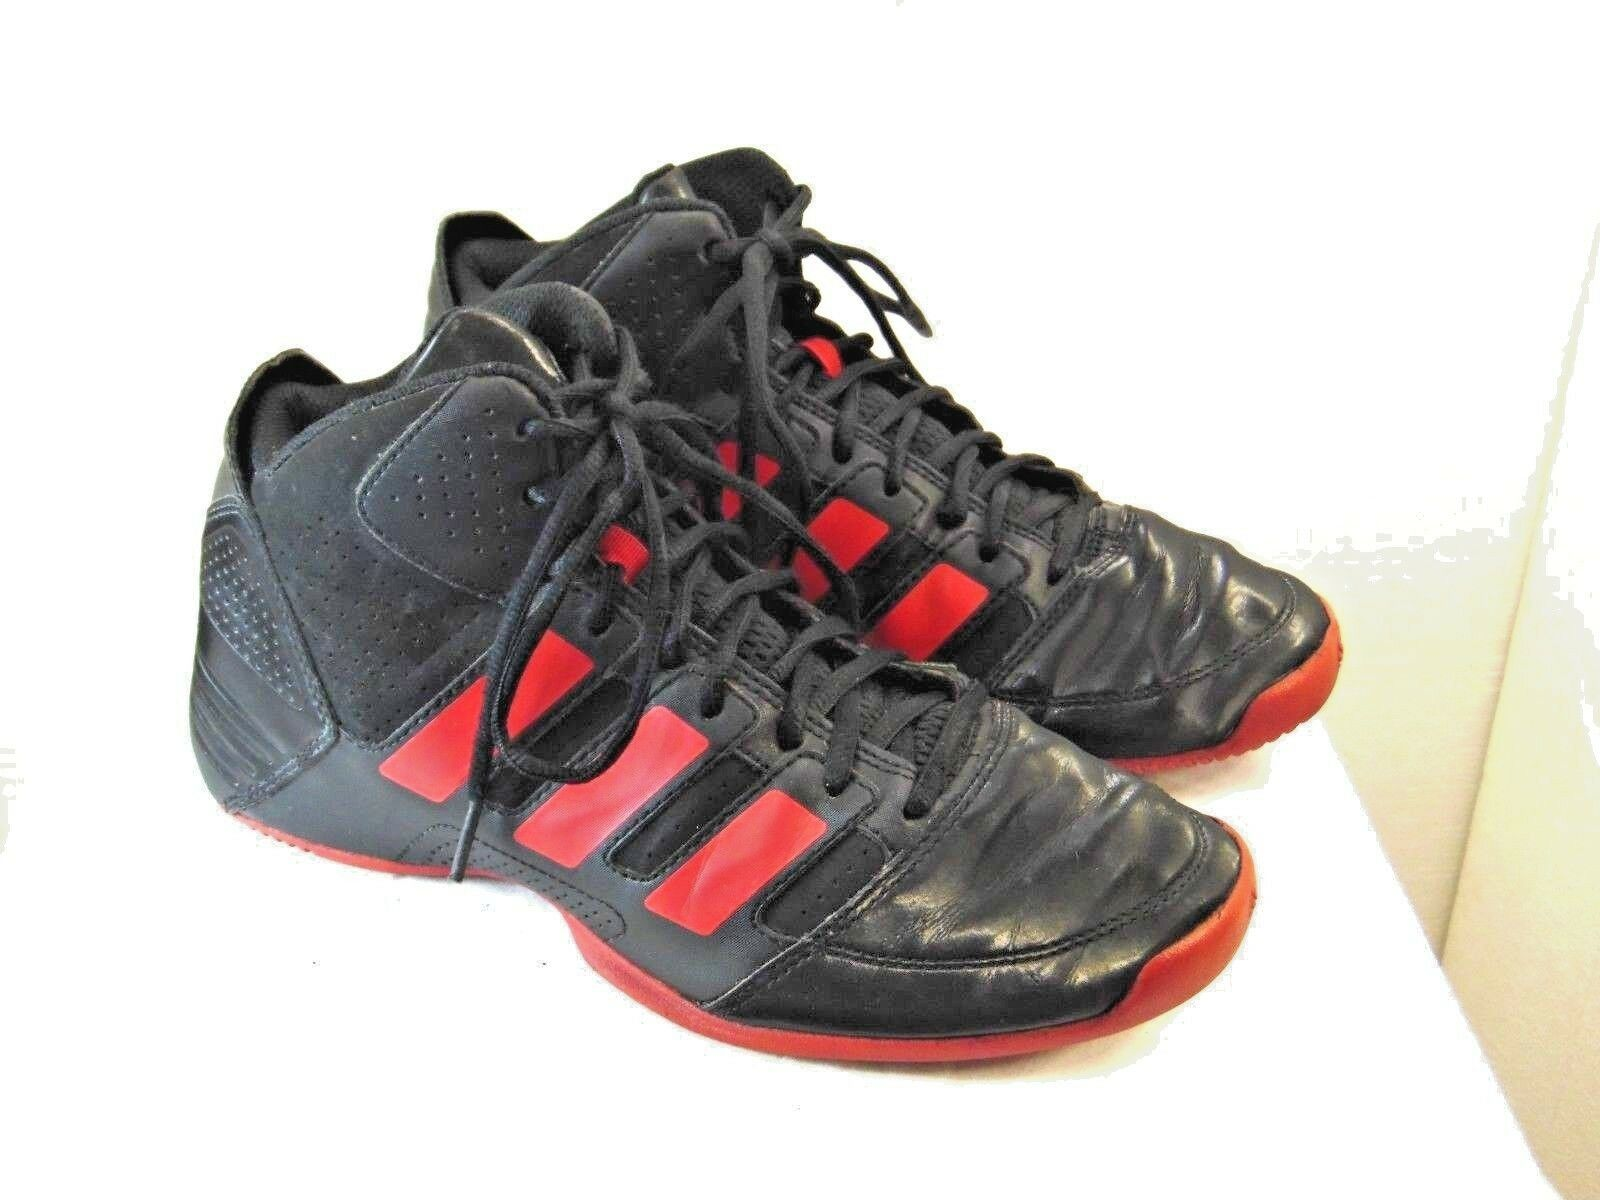 MENS OR BOYS  SHOES ADIDAS BRAND MENS SIZE 6.5 BOYS SIZE 4.5 YBLACK +RED ZV11 New shoes for men and women, limited time discount